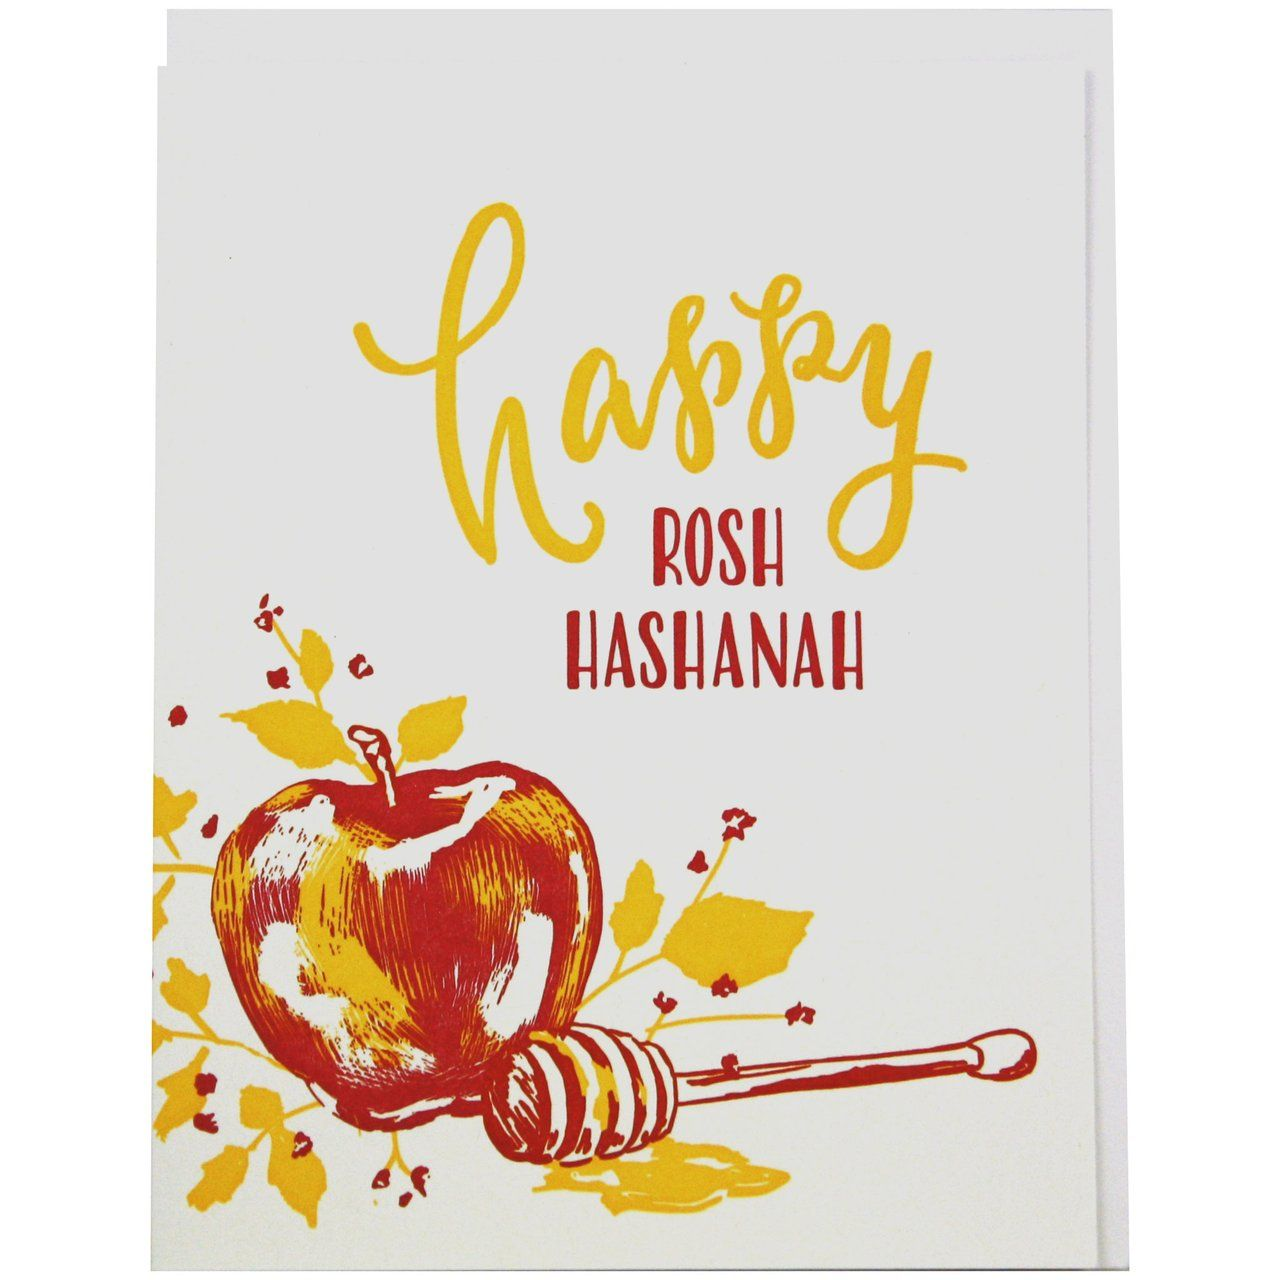 Rosh Hashanah Greetings Message Rosh Hashanah Greetings